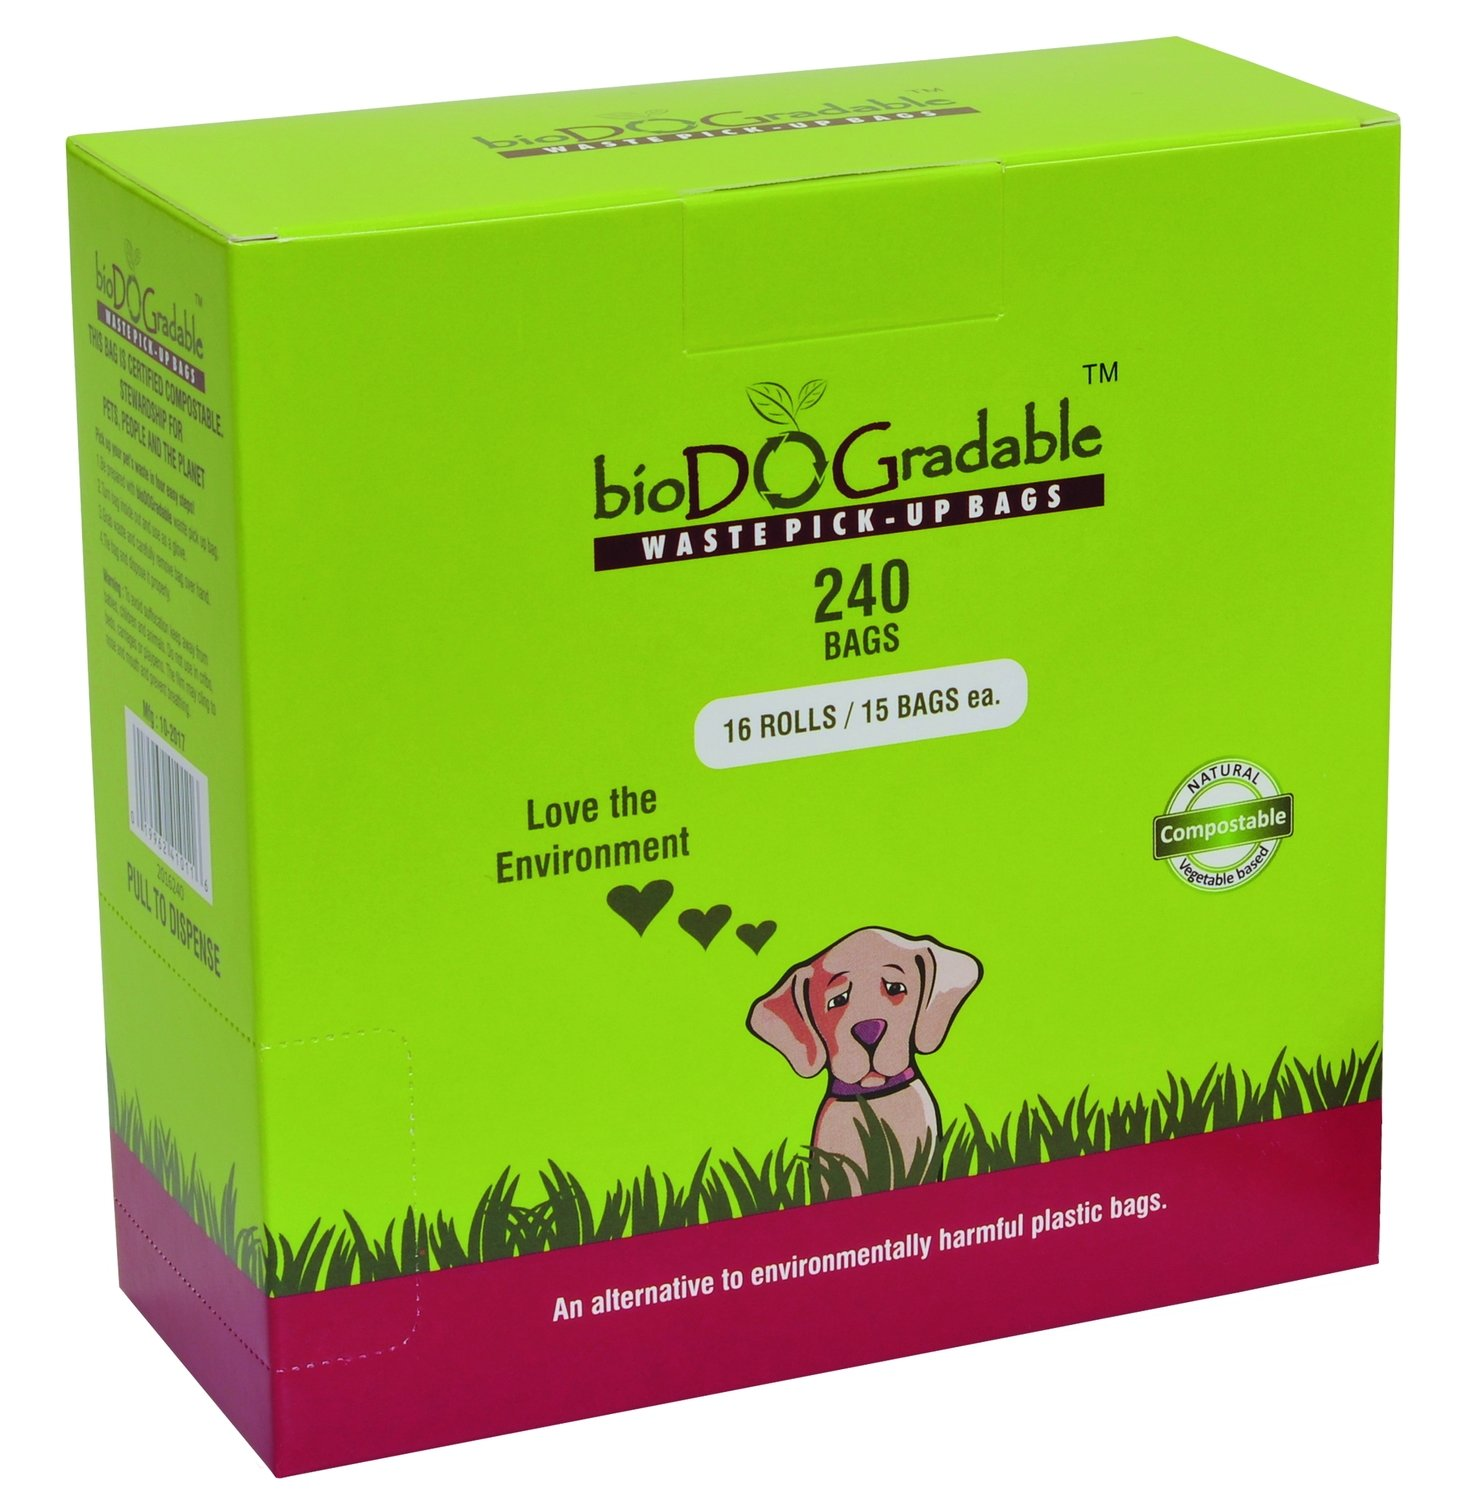 BioDOGradable Dog Bags 240